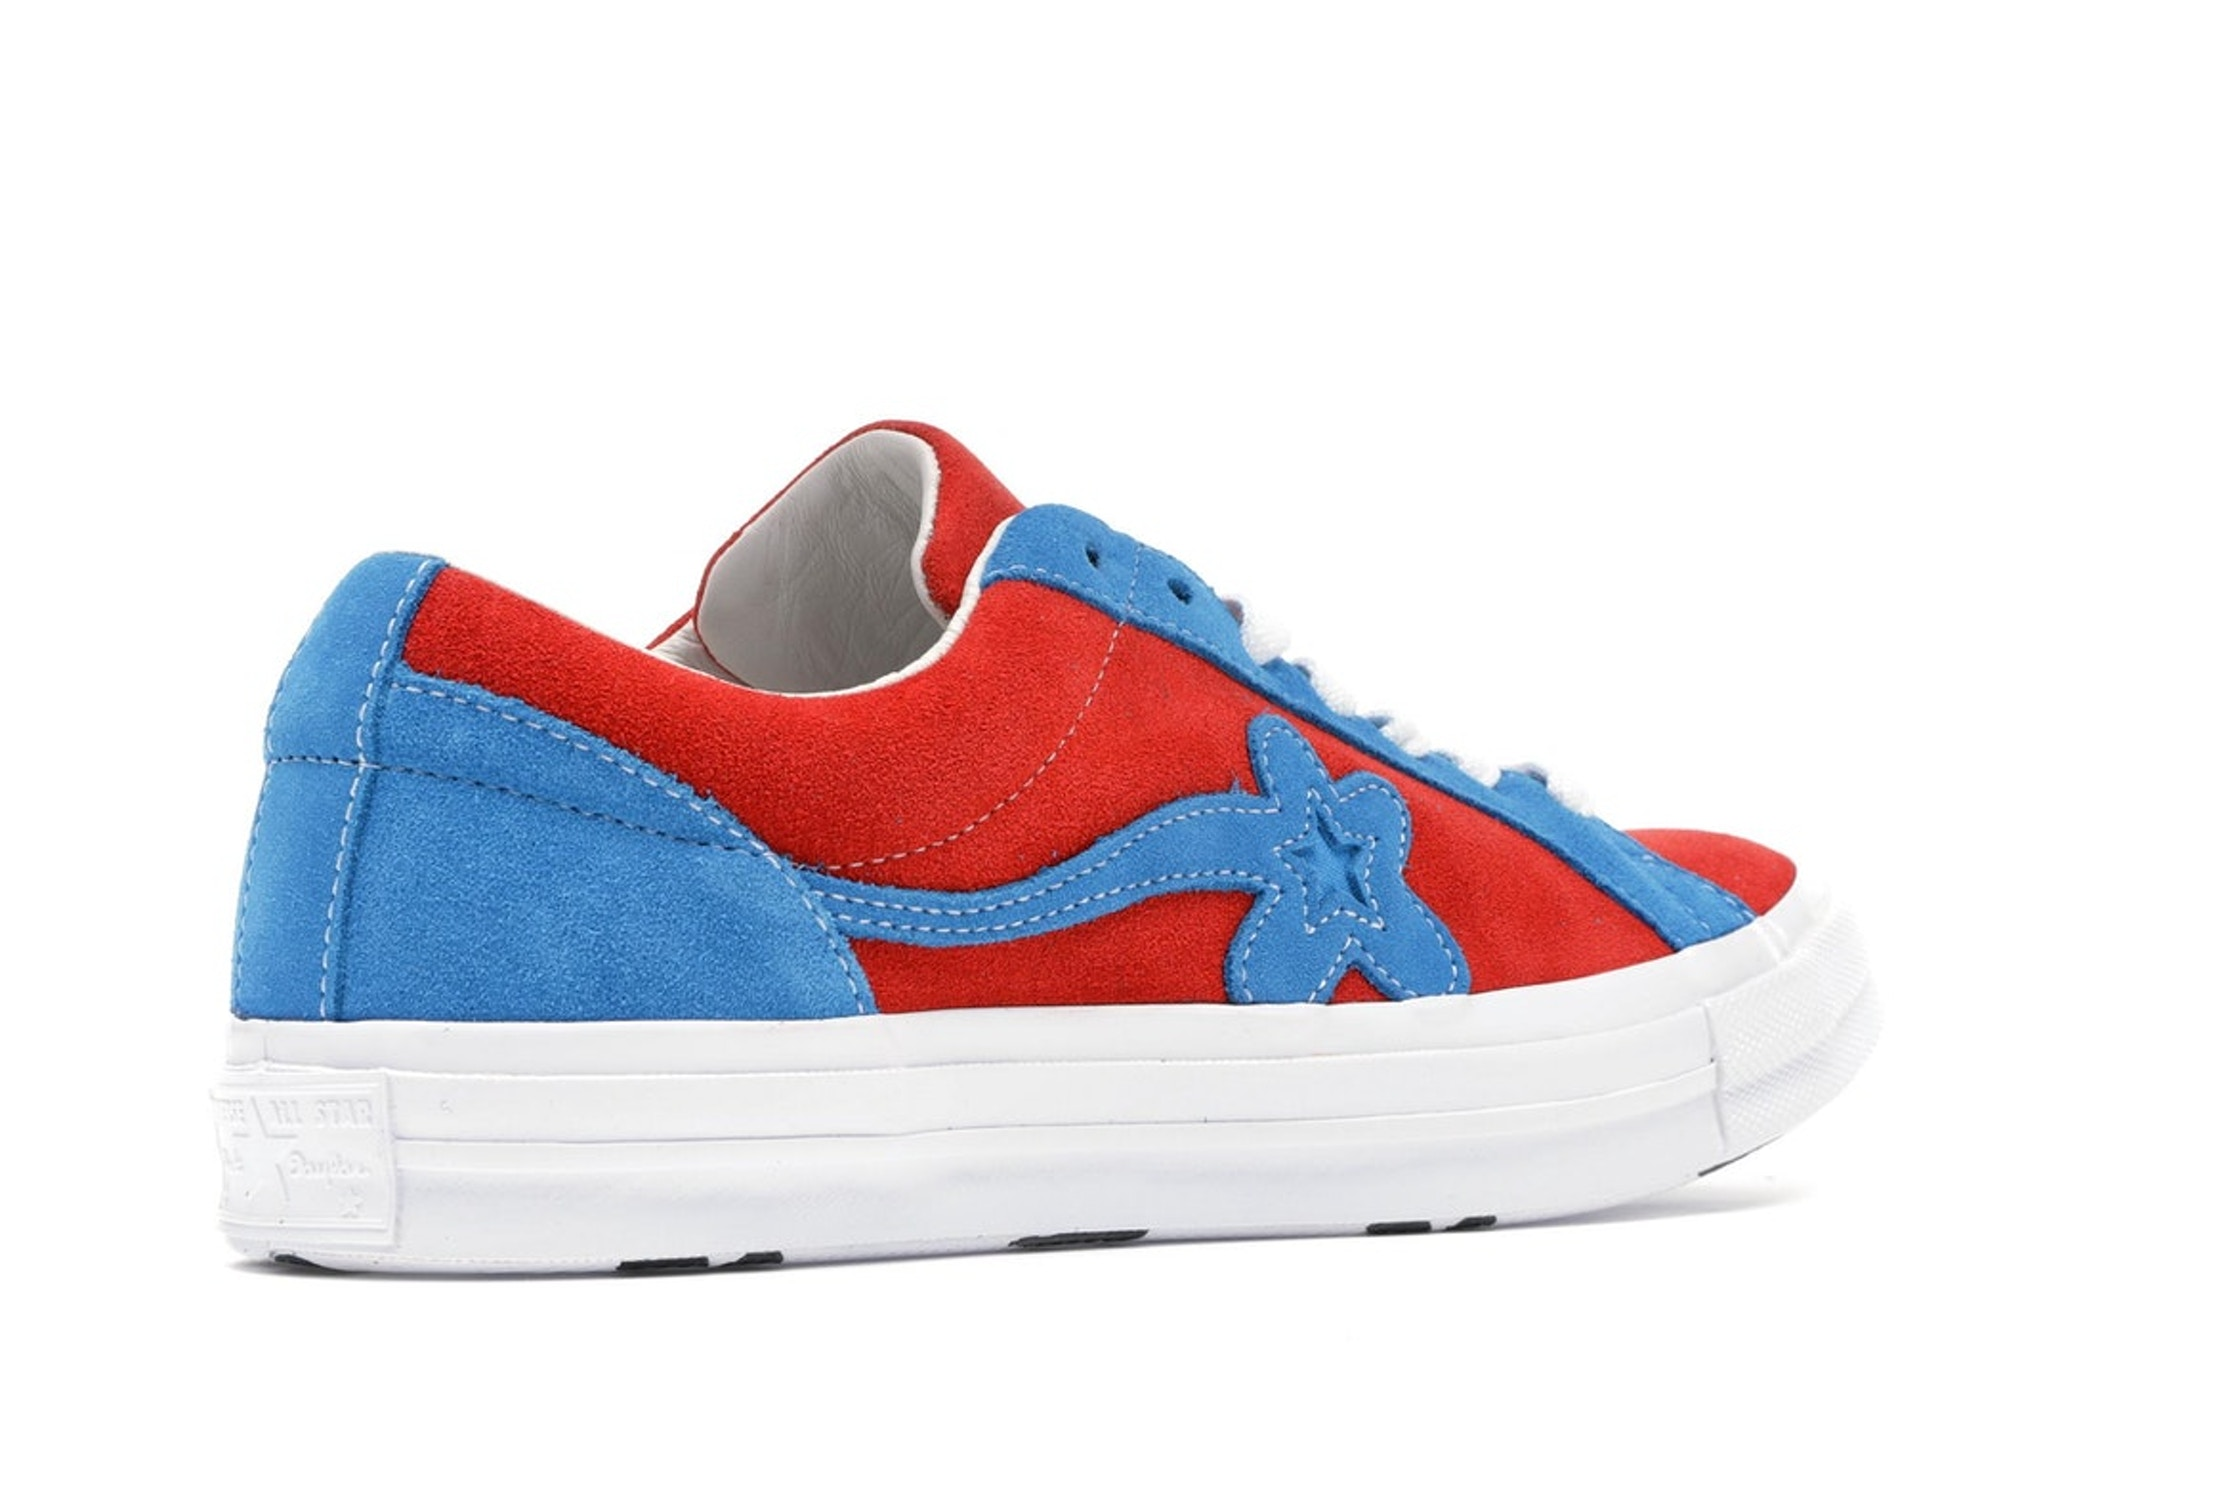 afcd21859813 Converse  Converse x Golf Le Fleur One Star Black 162129C 03  Converse One  Star Ox Tyler the Creator Golf Le Fleur Red Blu ...